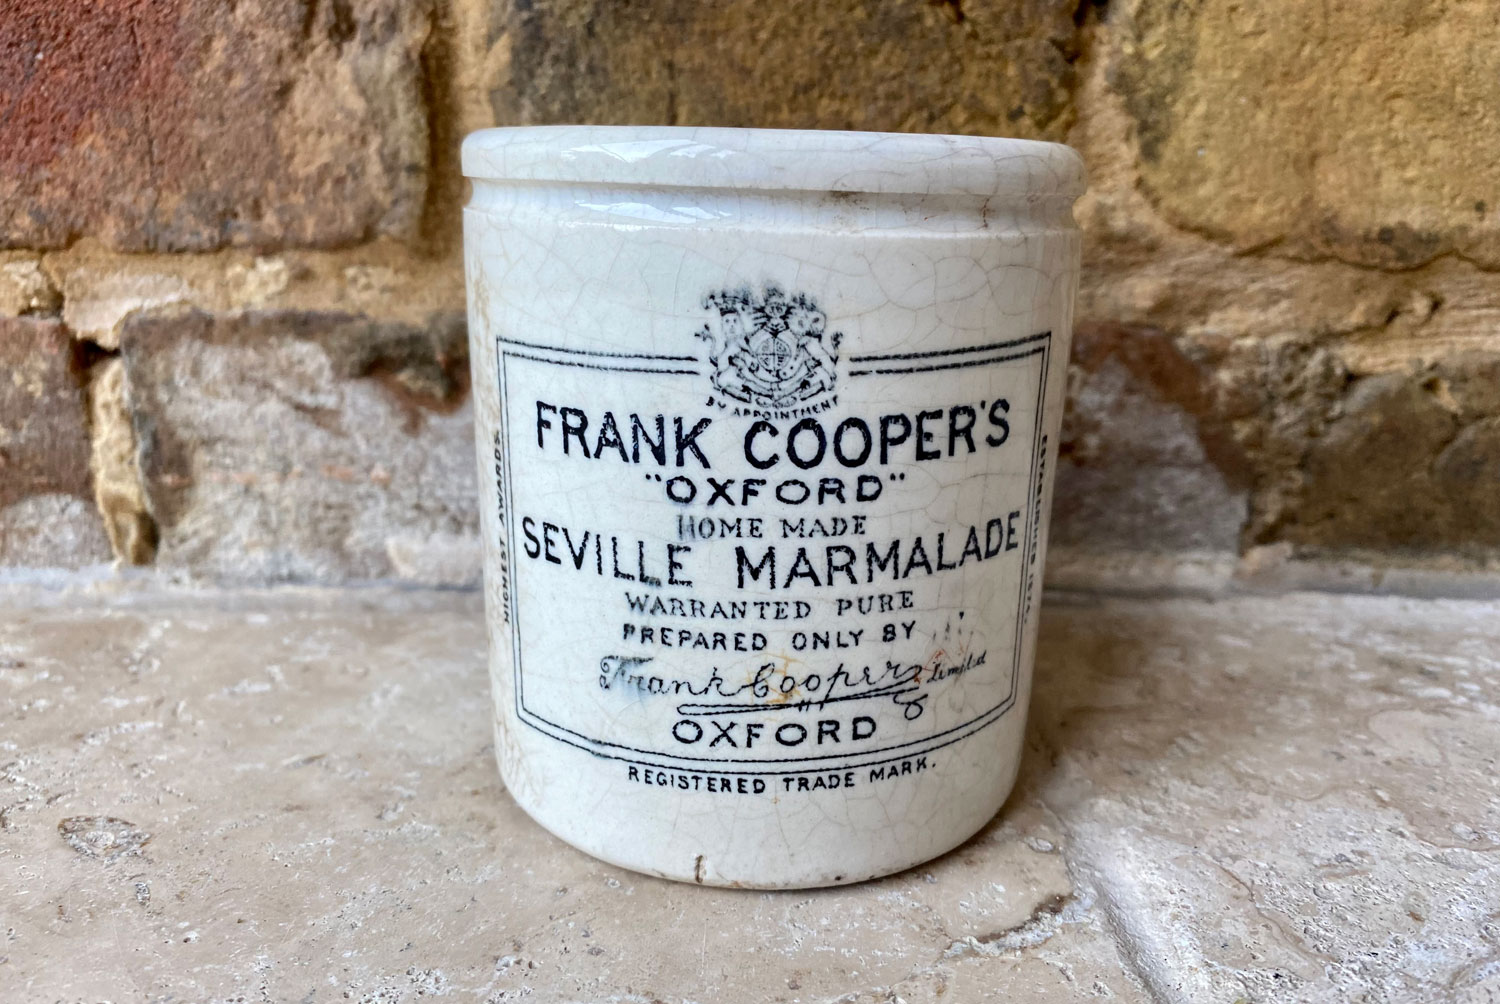 antique victorian white ironstone english advertising pot one pound chubby frank cooper oxford marmalade